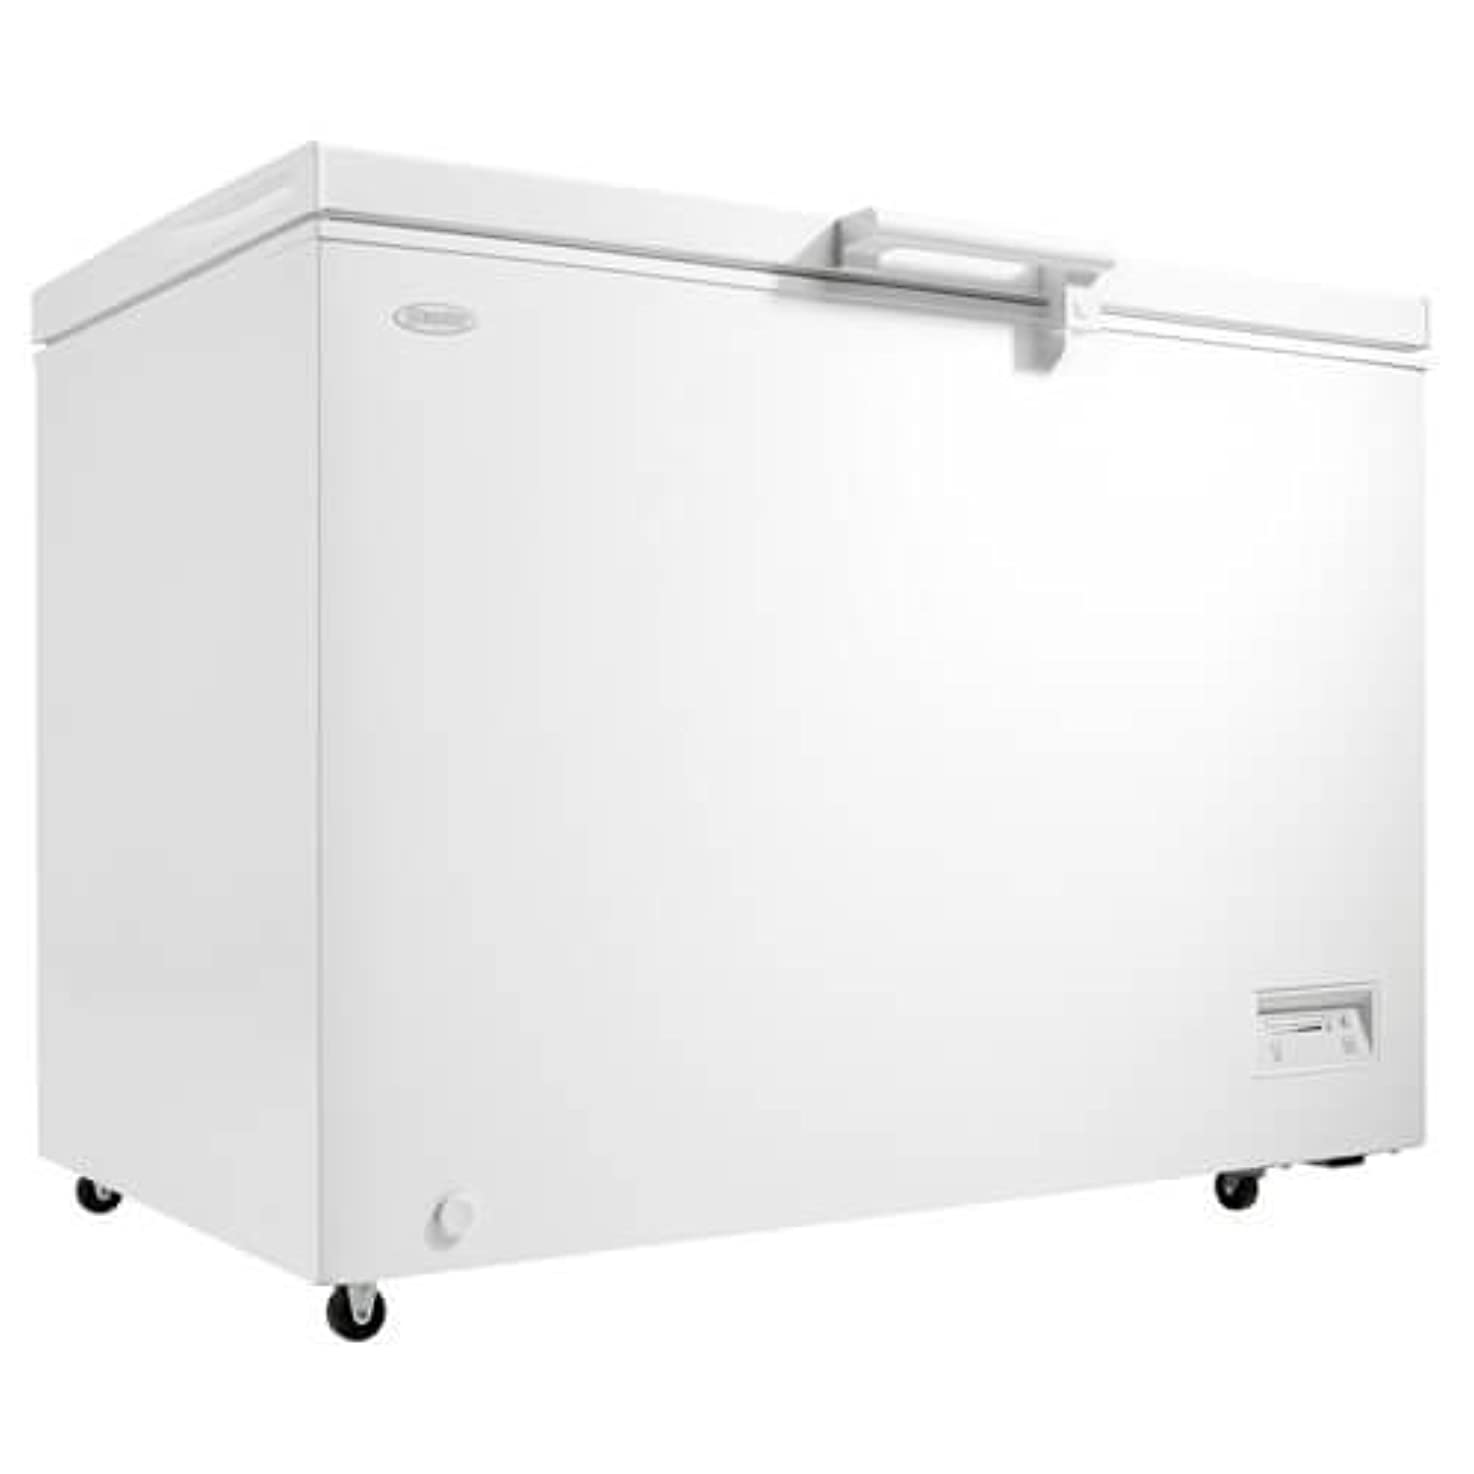 Danby 11-Cu. Ft. Chest Freezer rtfgkhgesygkt6